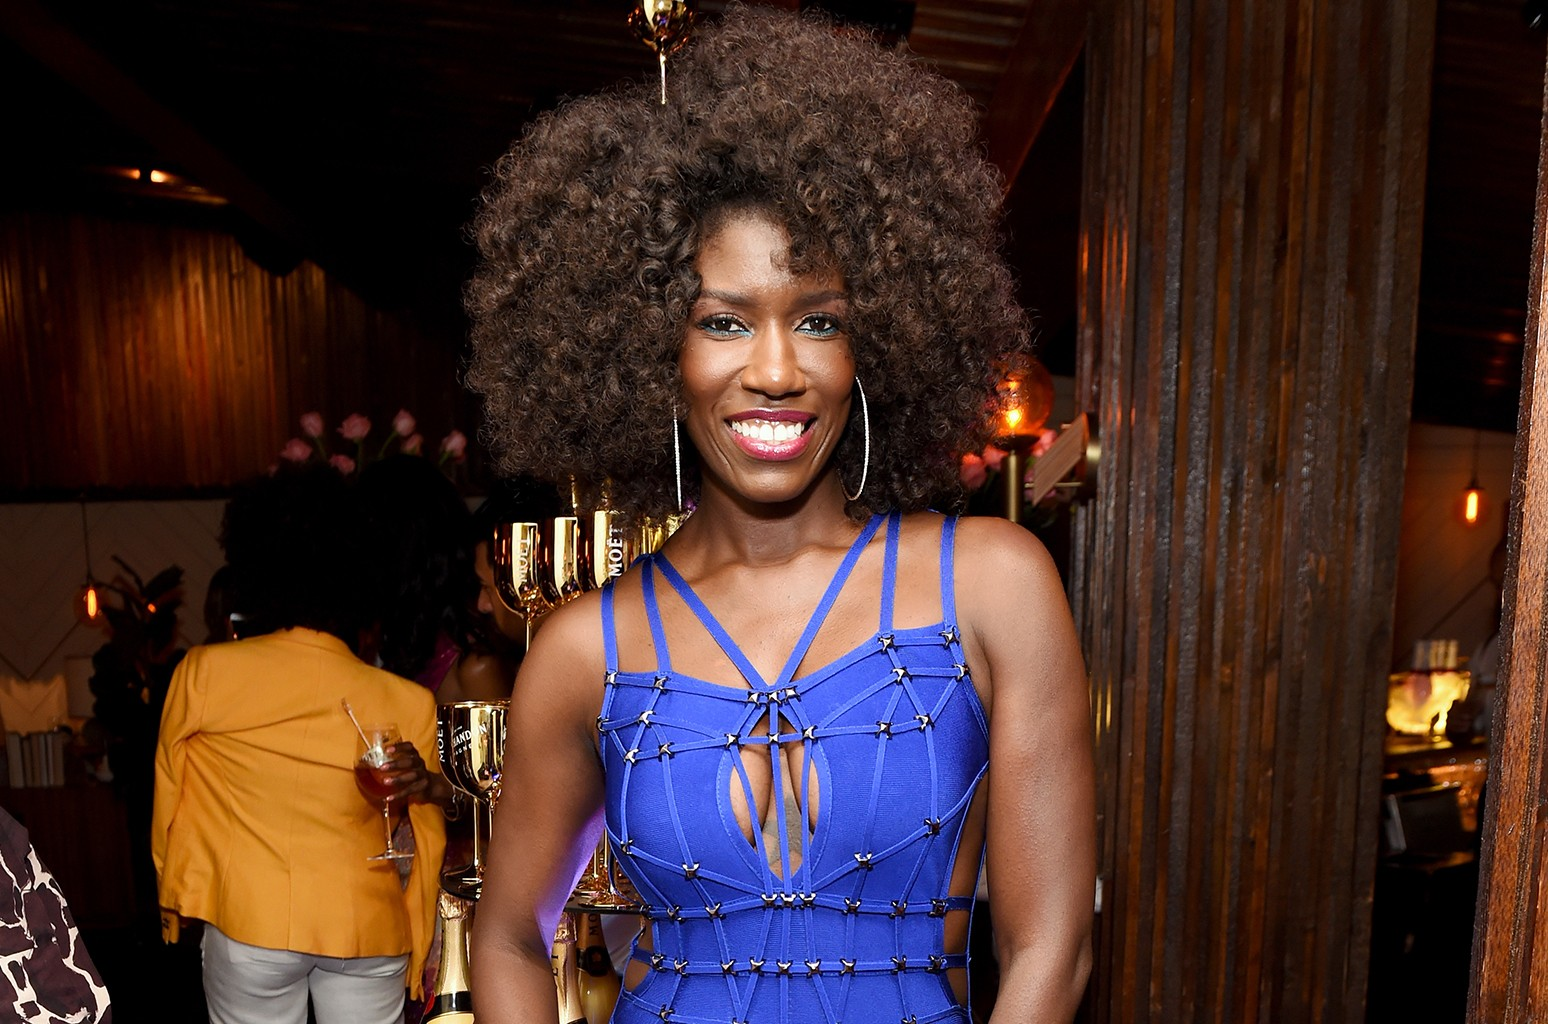 Bozoma Saint John attends Moet & Chandon's Beats and Bites dinner series at The Nice Guy on May 21, 2017 in Los Angeles.